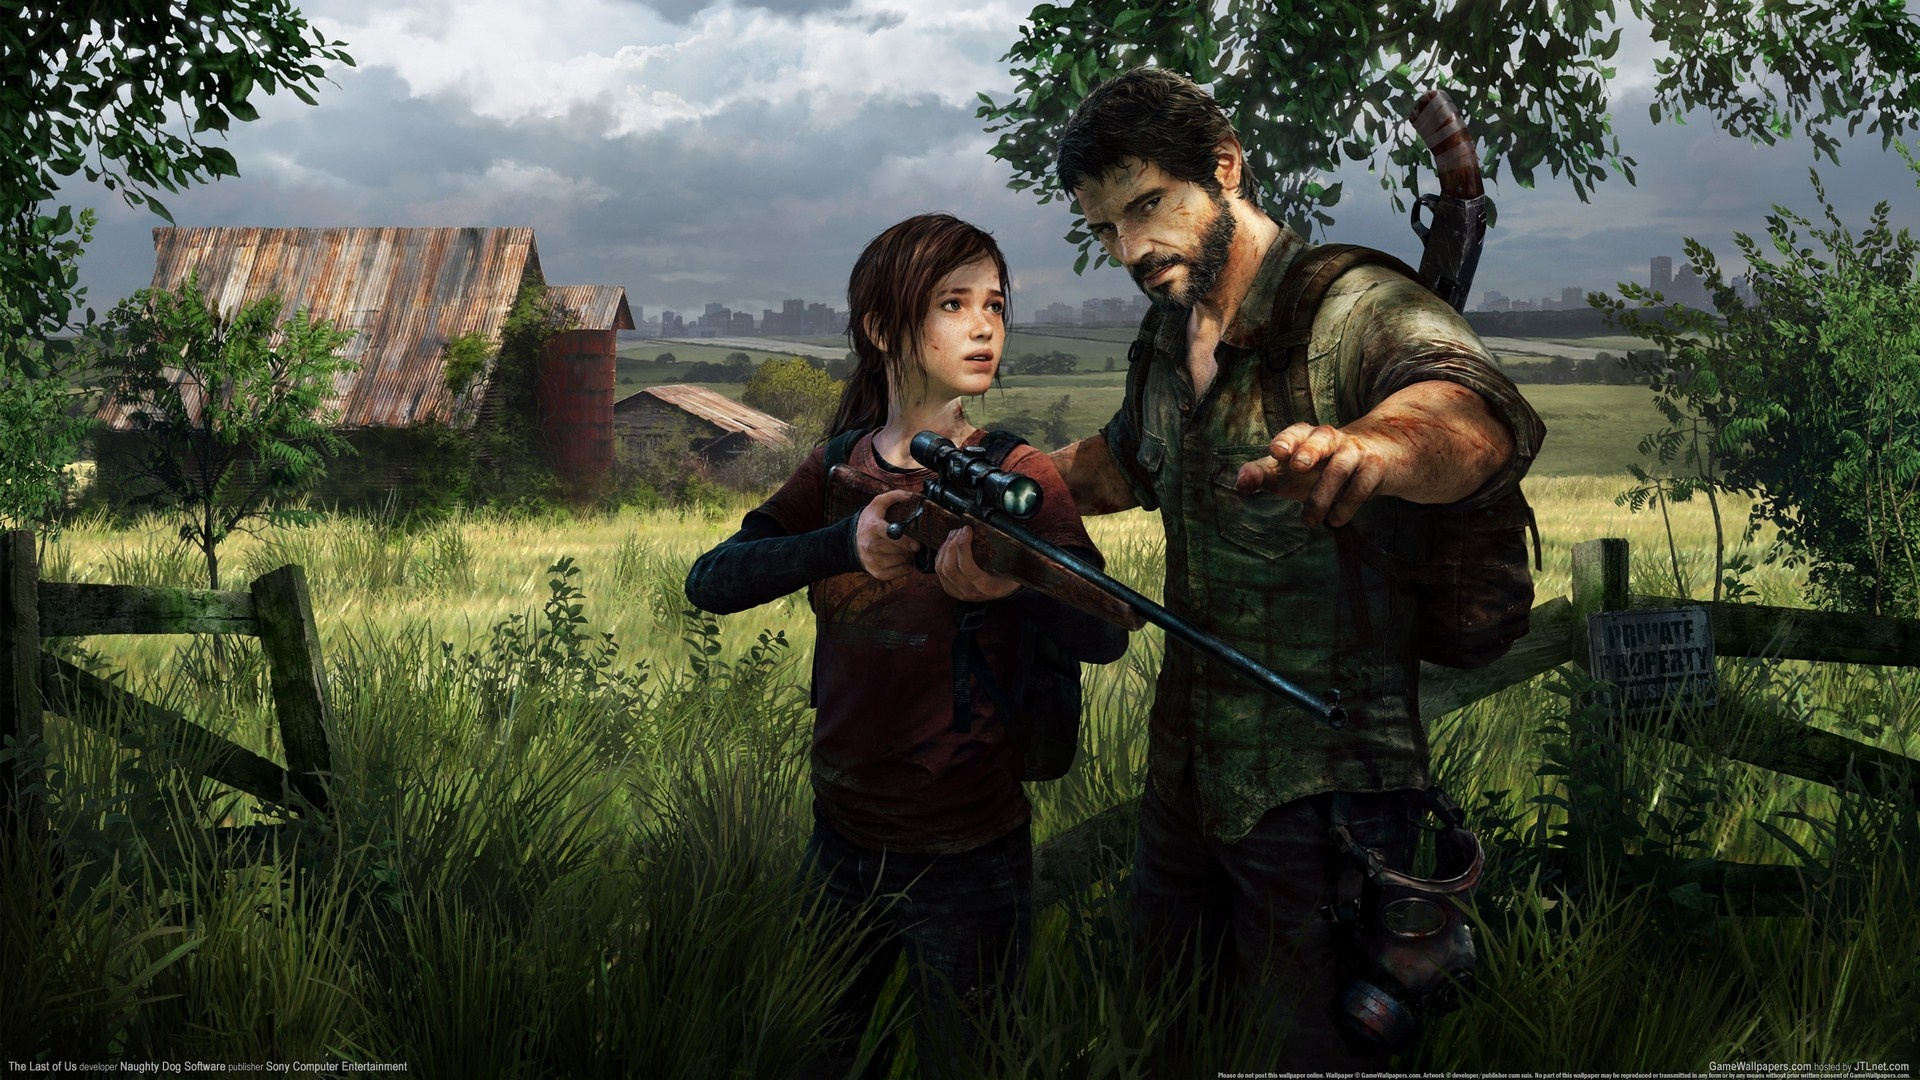 Wallpaper The Last Of Us Hd 1920x1080 Full Hd 2k Picture Image